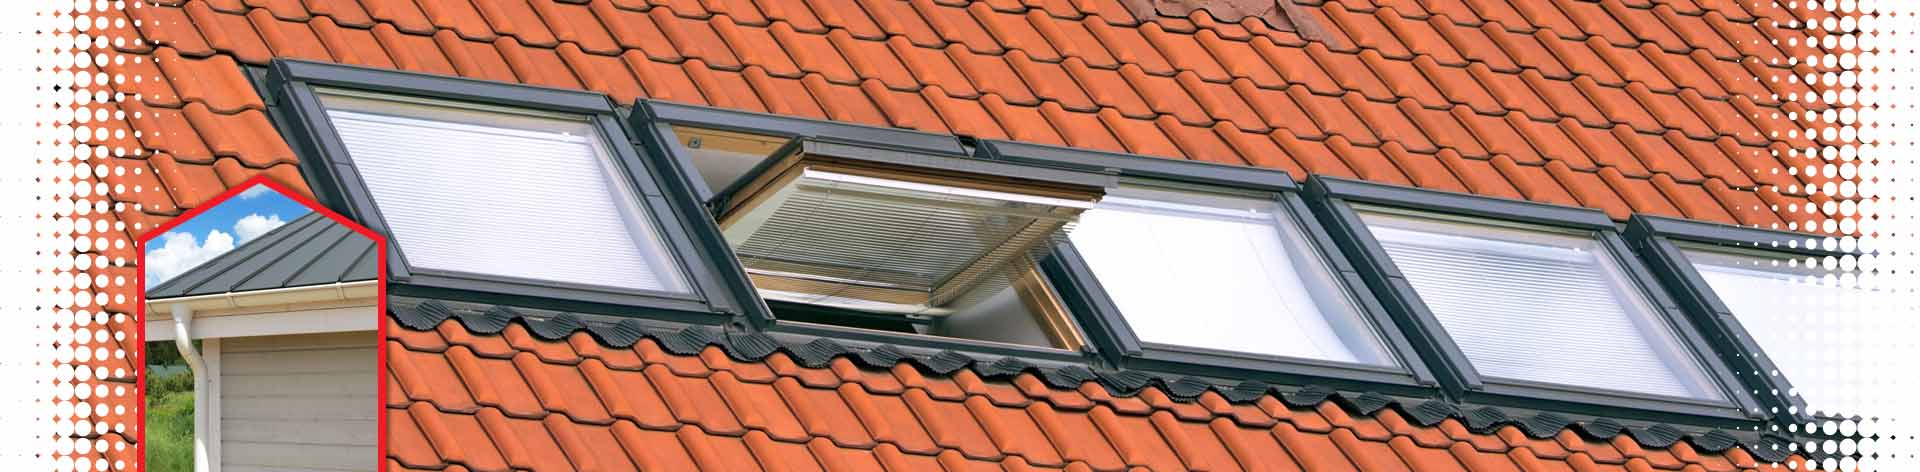 Skylight installation by Just Roofing